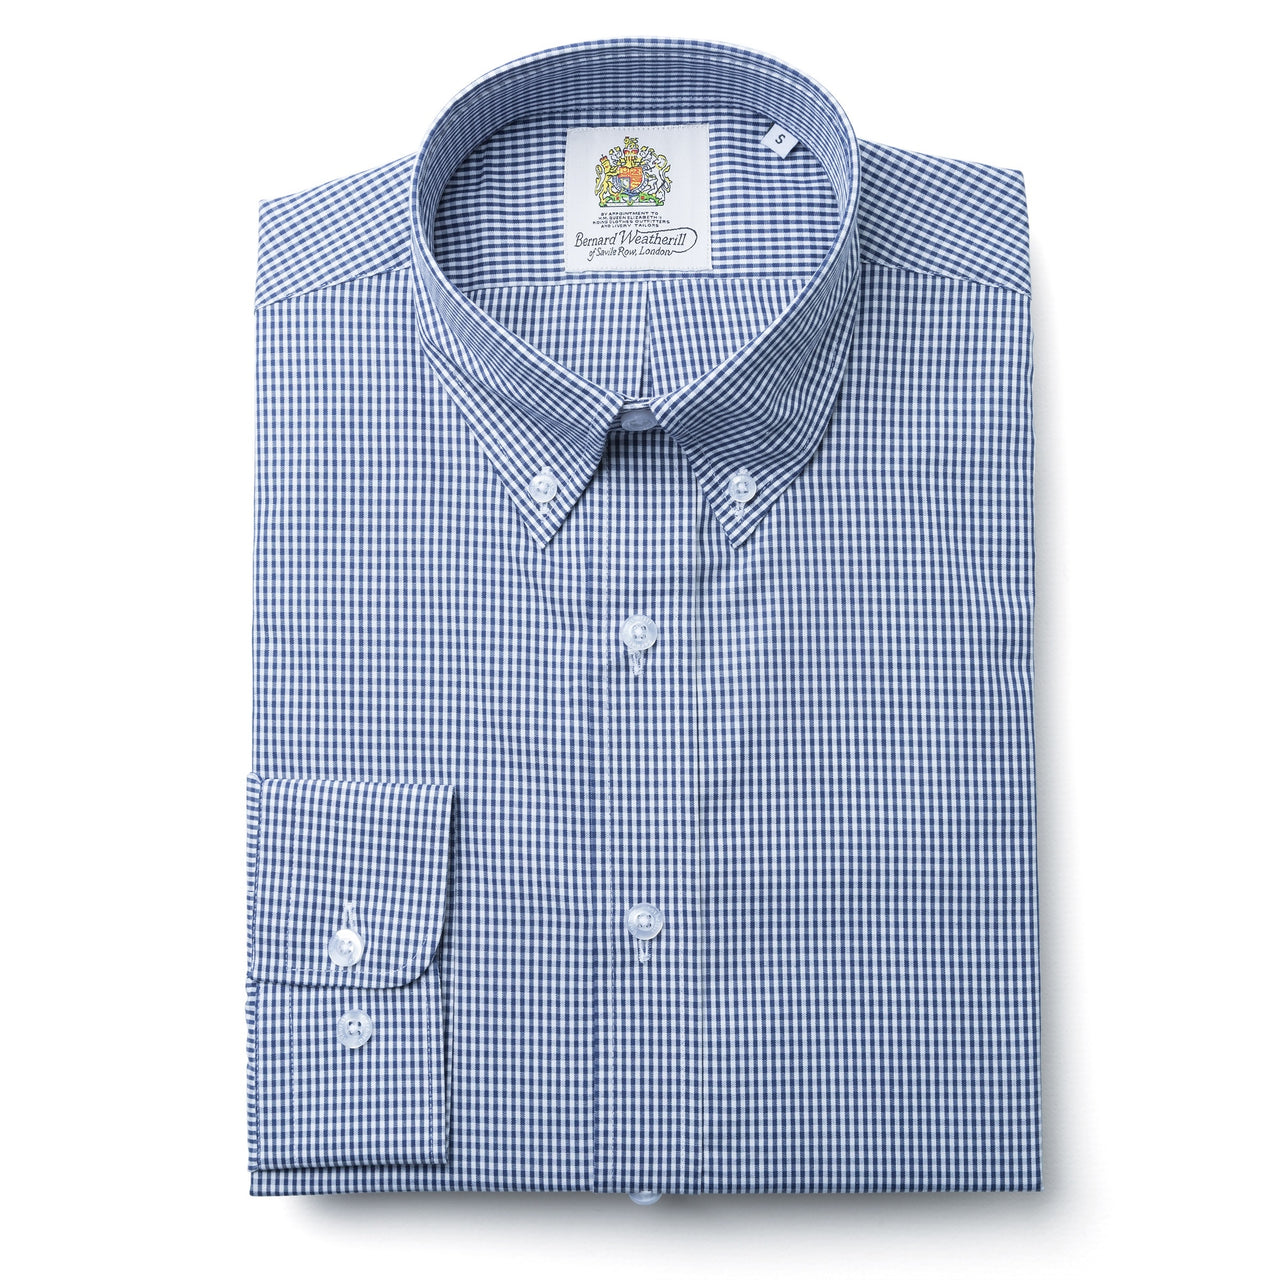 Bernard Weatherill Blue & White Check Button Down Shirt